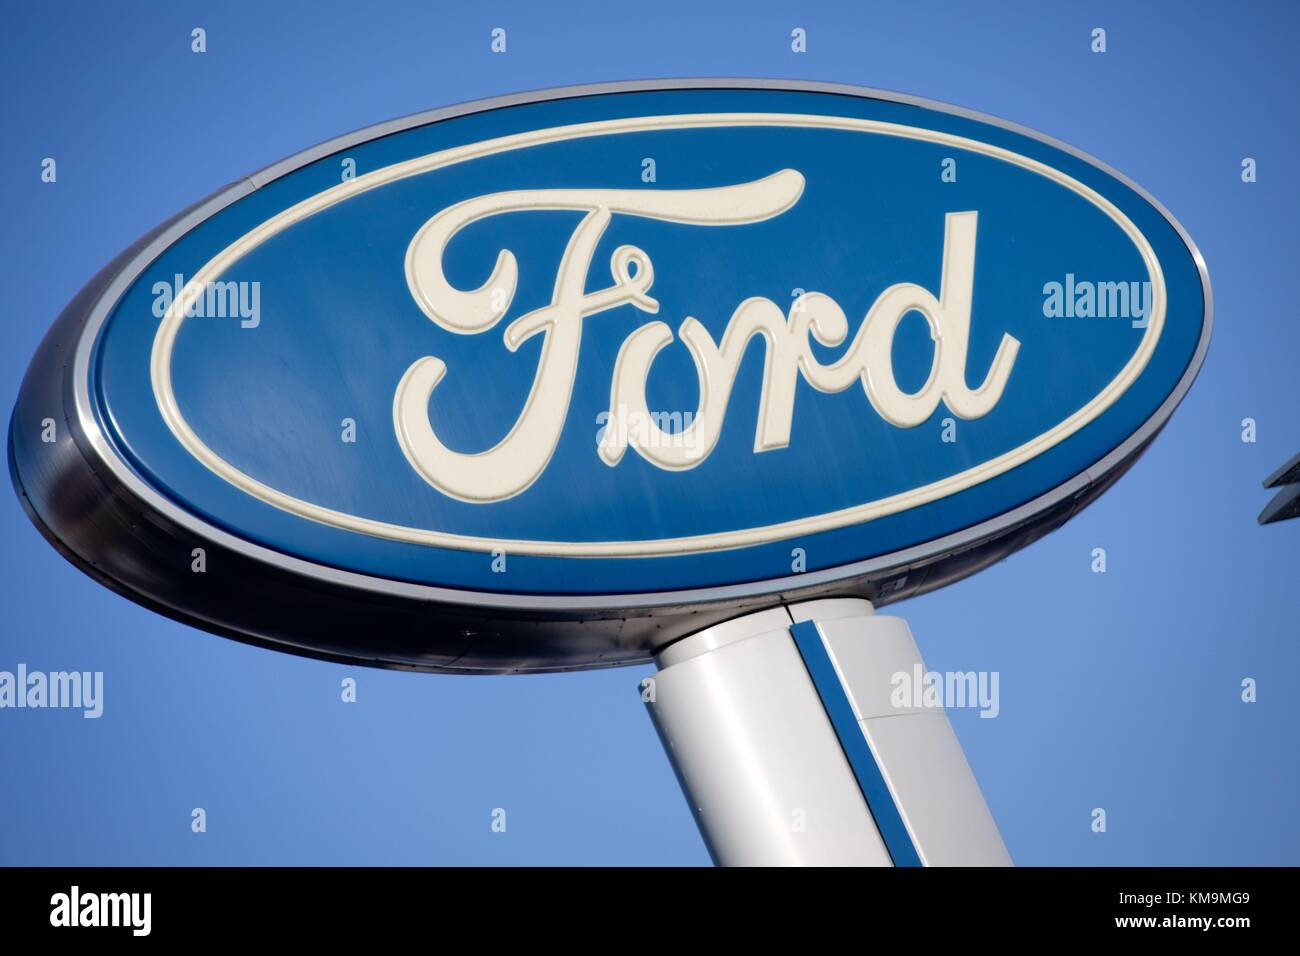 San Diego Ford Dealers >> Ford Logo At Kearny Pearson Ford Car Dealer In Kearny Mesa